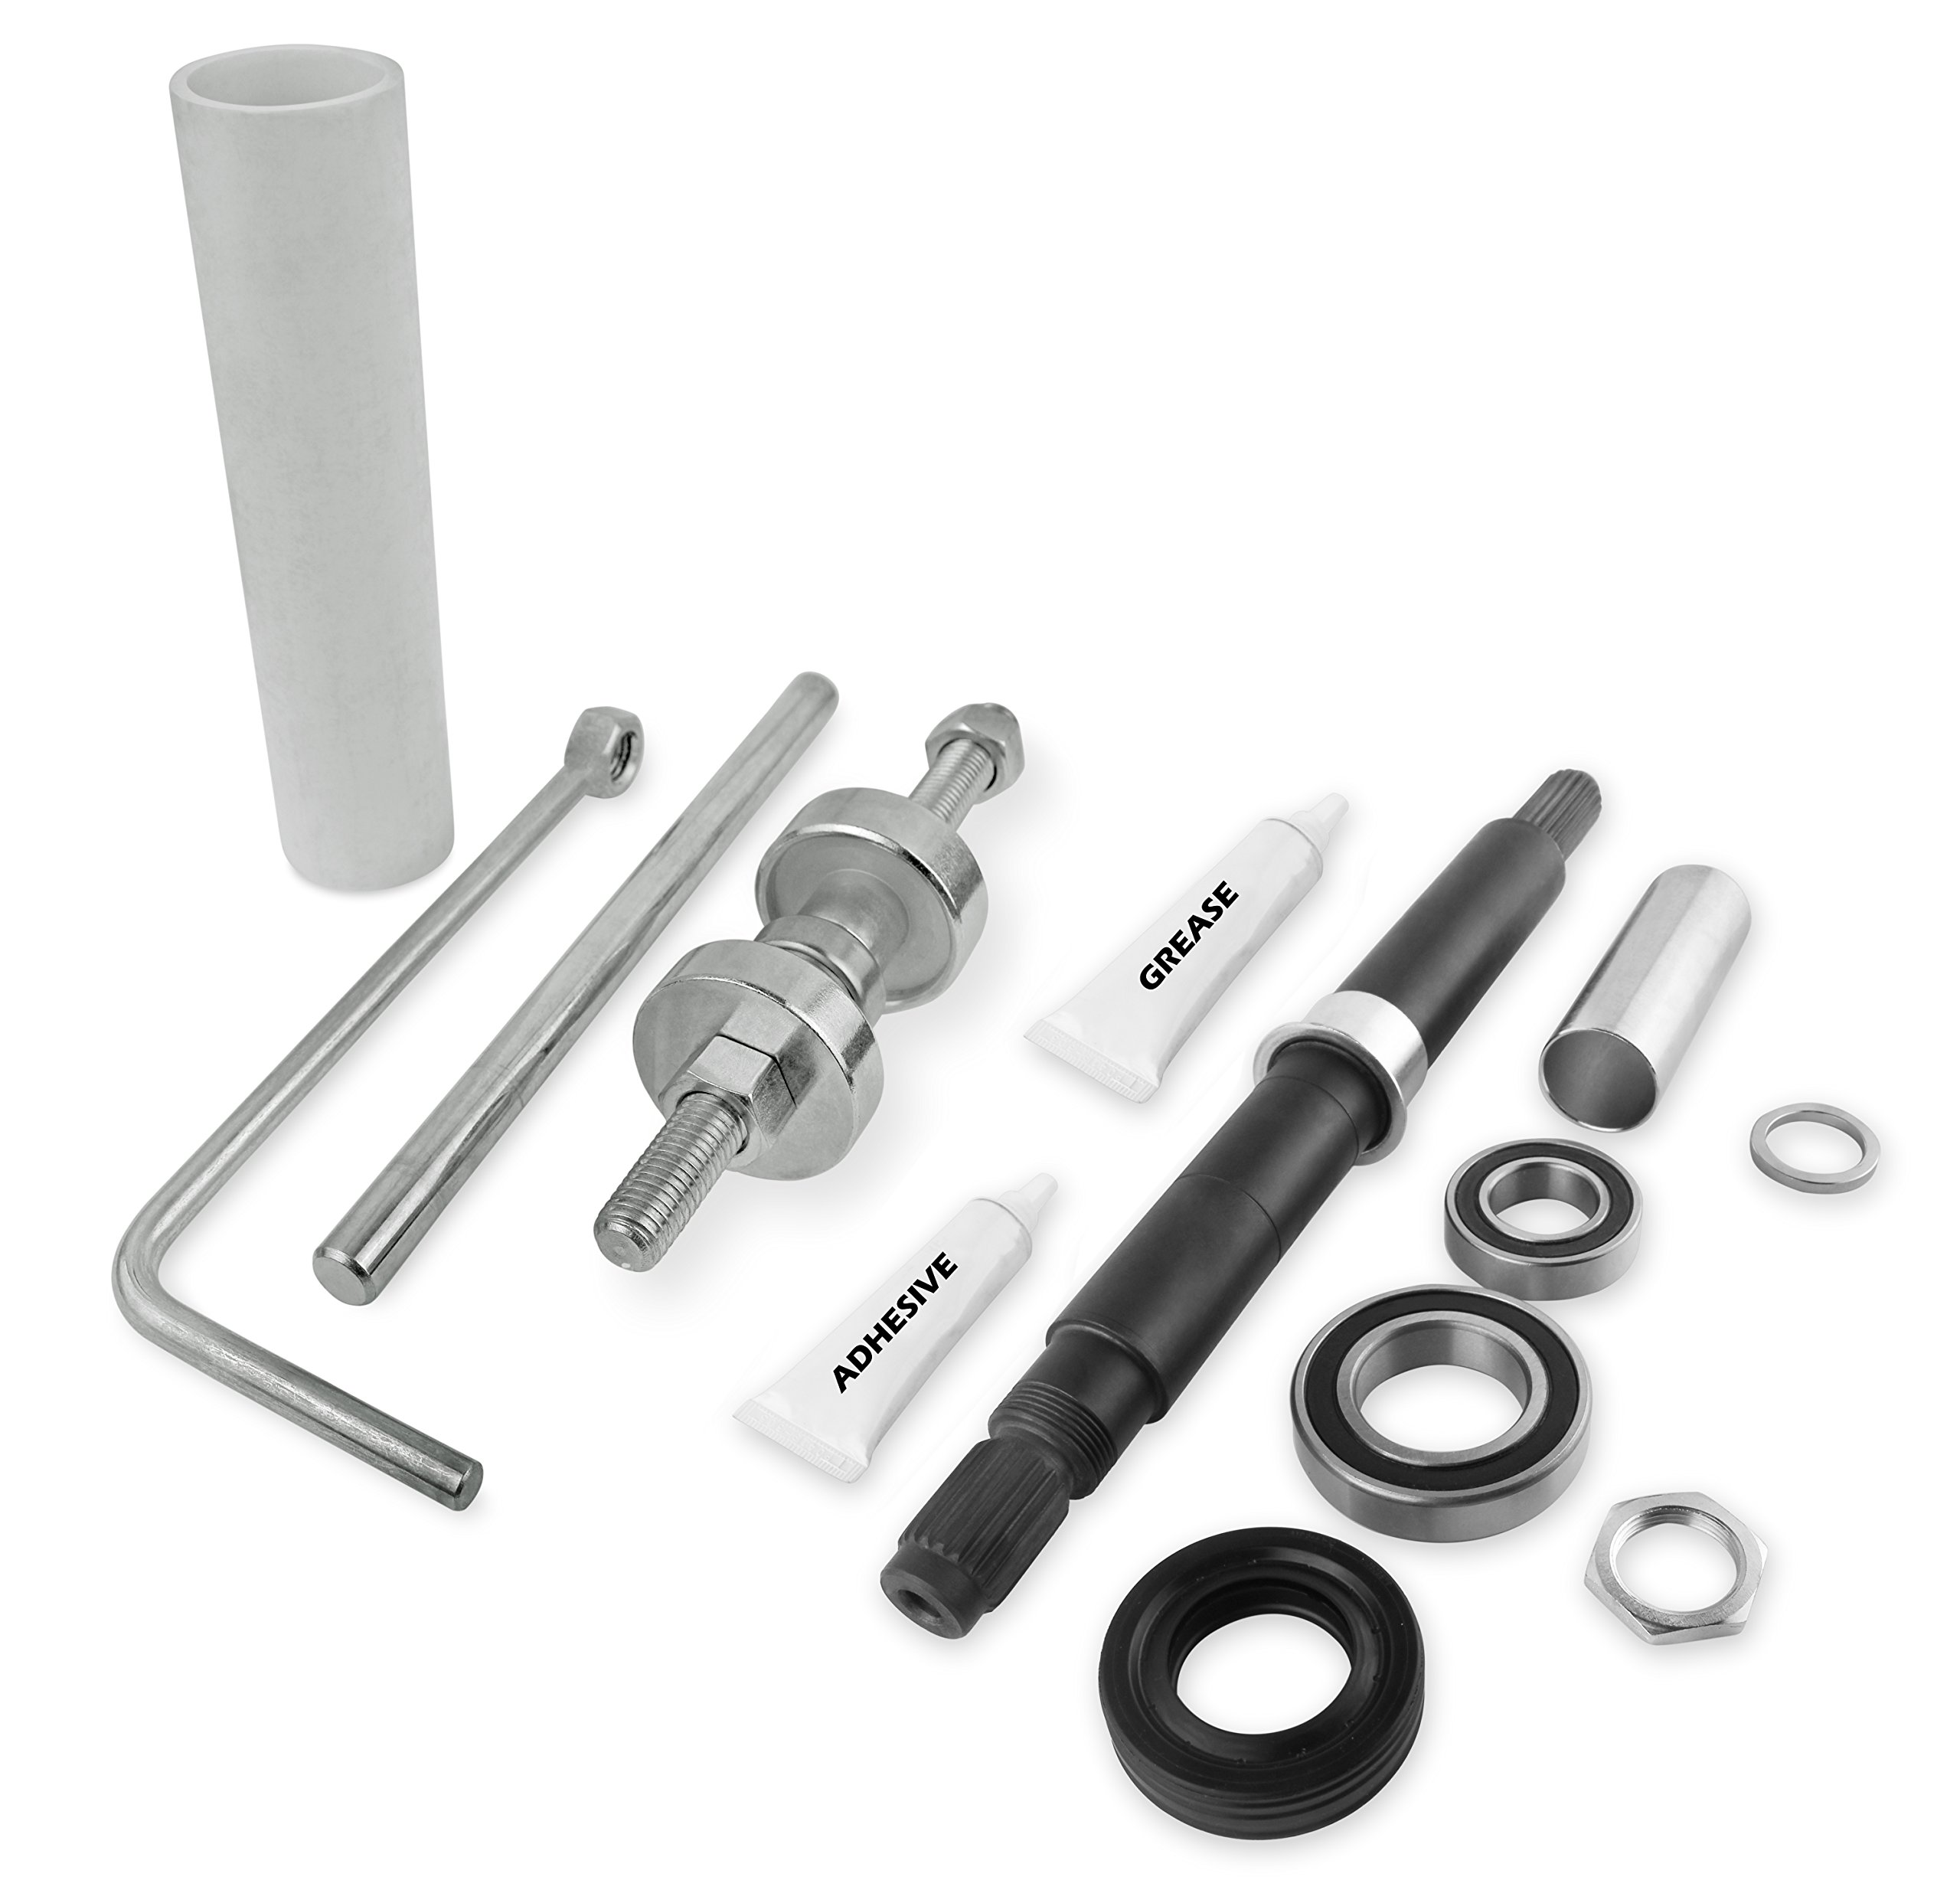 Bearing and seal Kit With Tool Fits Whirlpool W10435302 and W10447783 by KOB